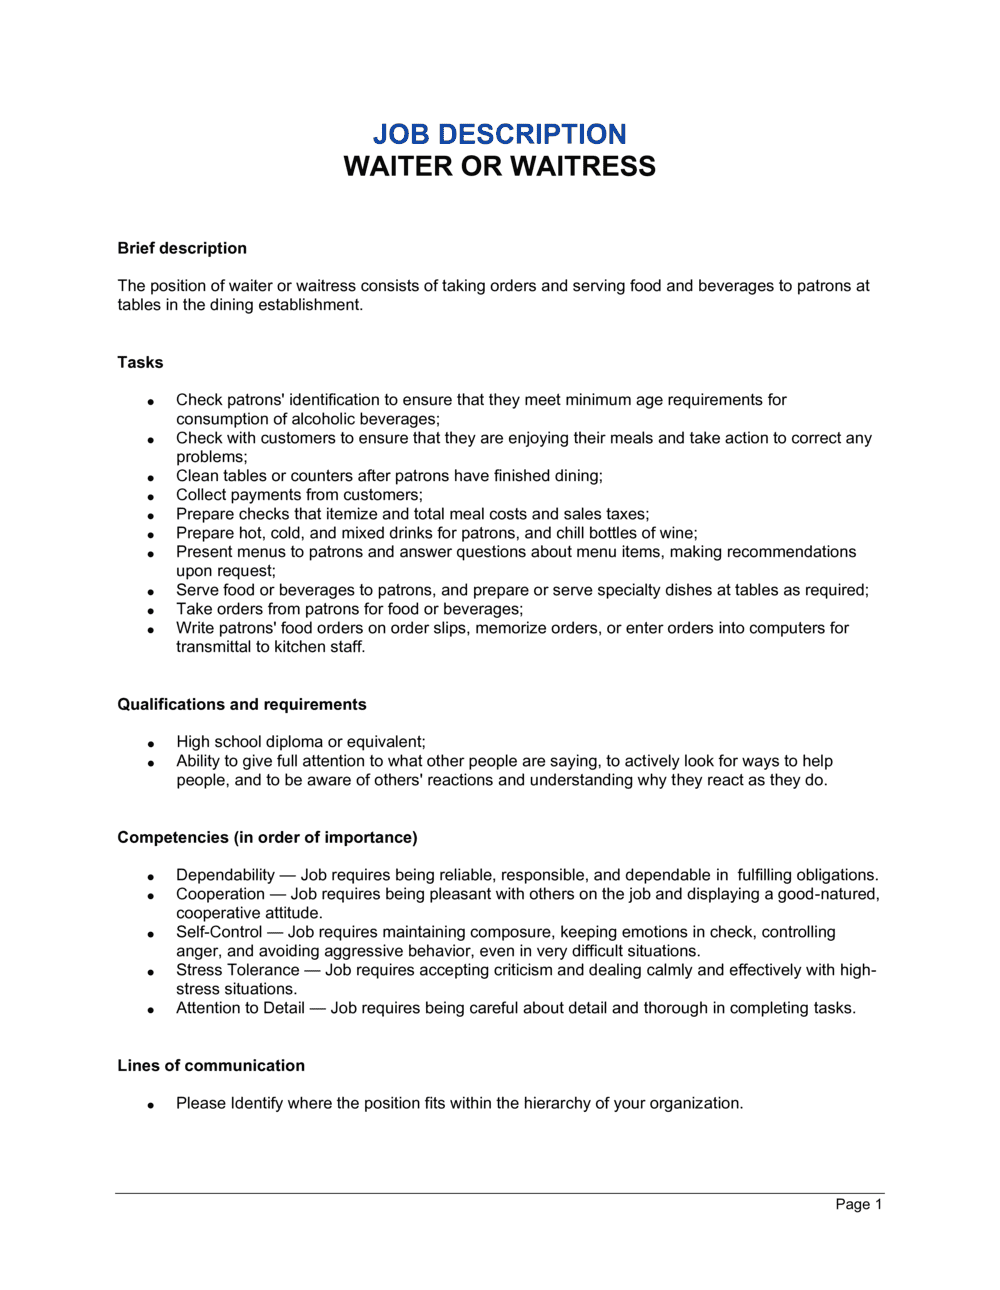 Business-in-a-Box's Waiter and Waitress Job Description Template